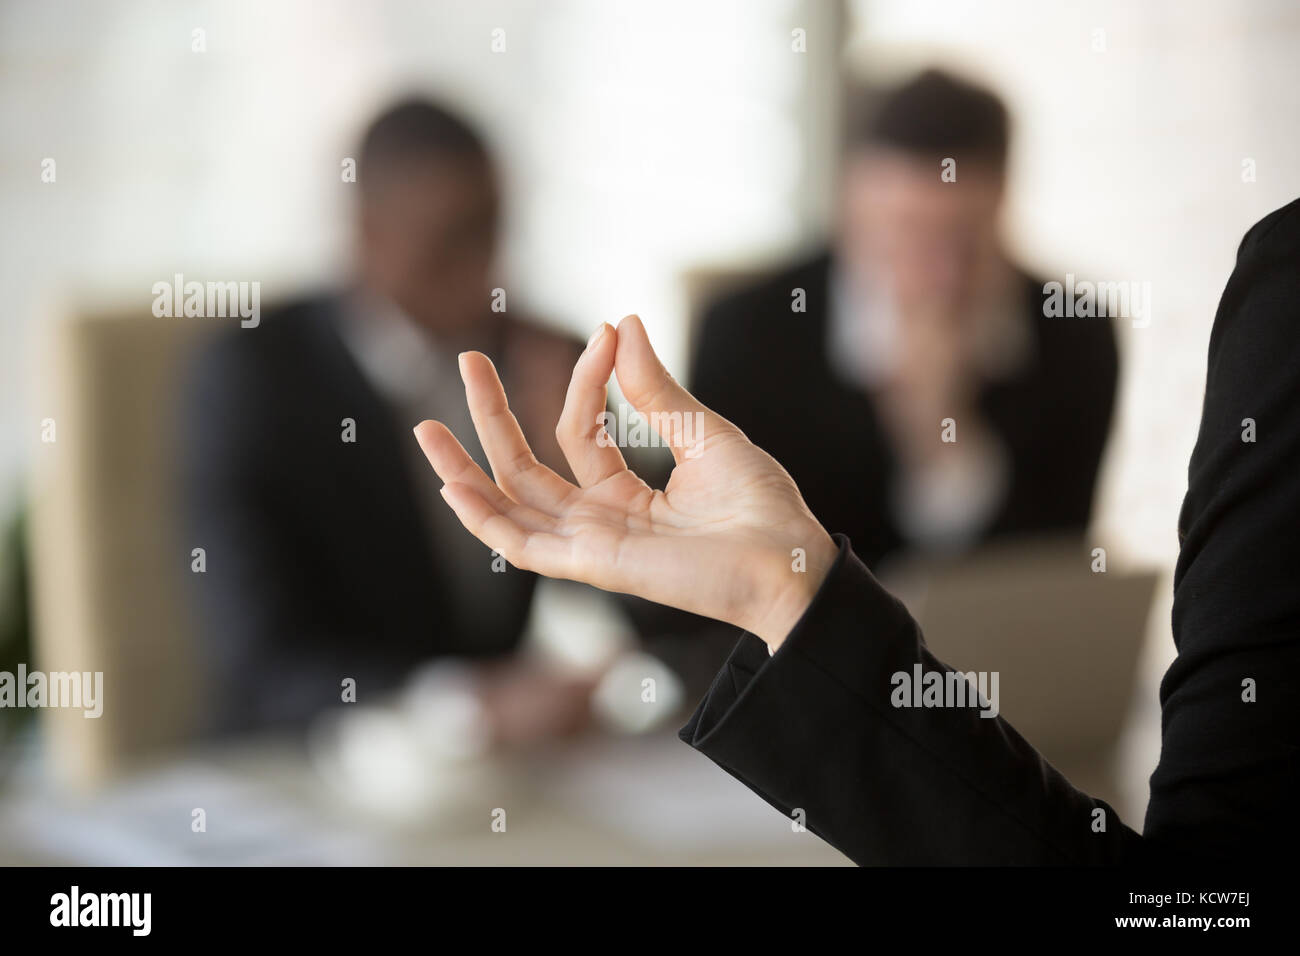 Close up image of female palm with fingers folded in Jnana mudra gesture with blurred silhouettes of talking businessmen - Stock Image